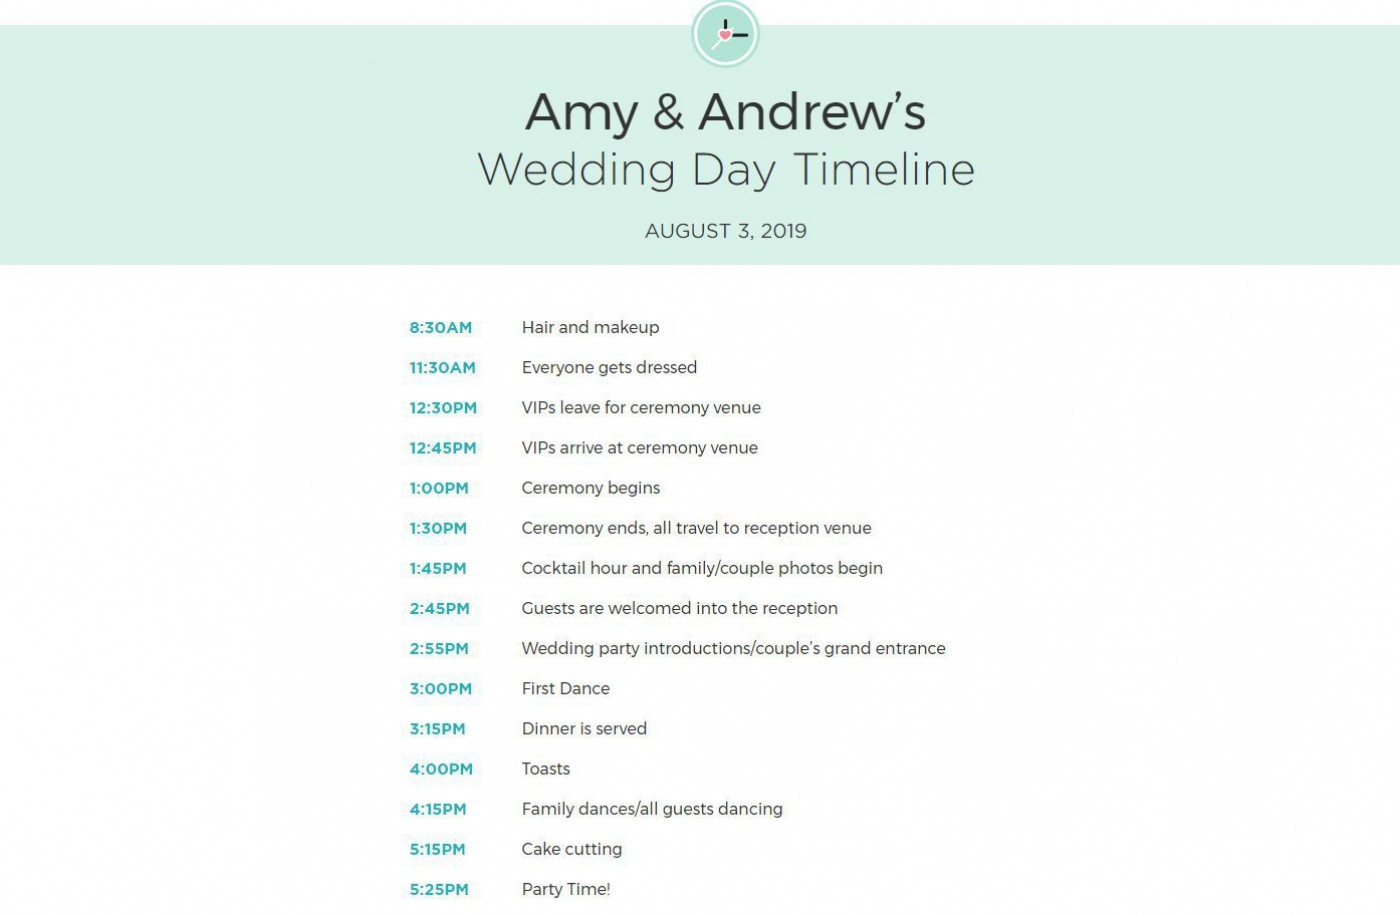 008 Impressive Wedding Weekend Itinerary Template Image  Day Timeline Word Sample1400